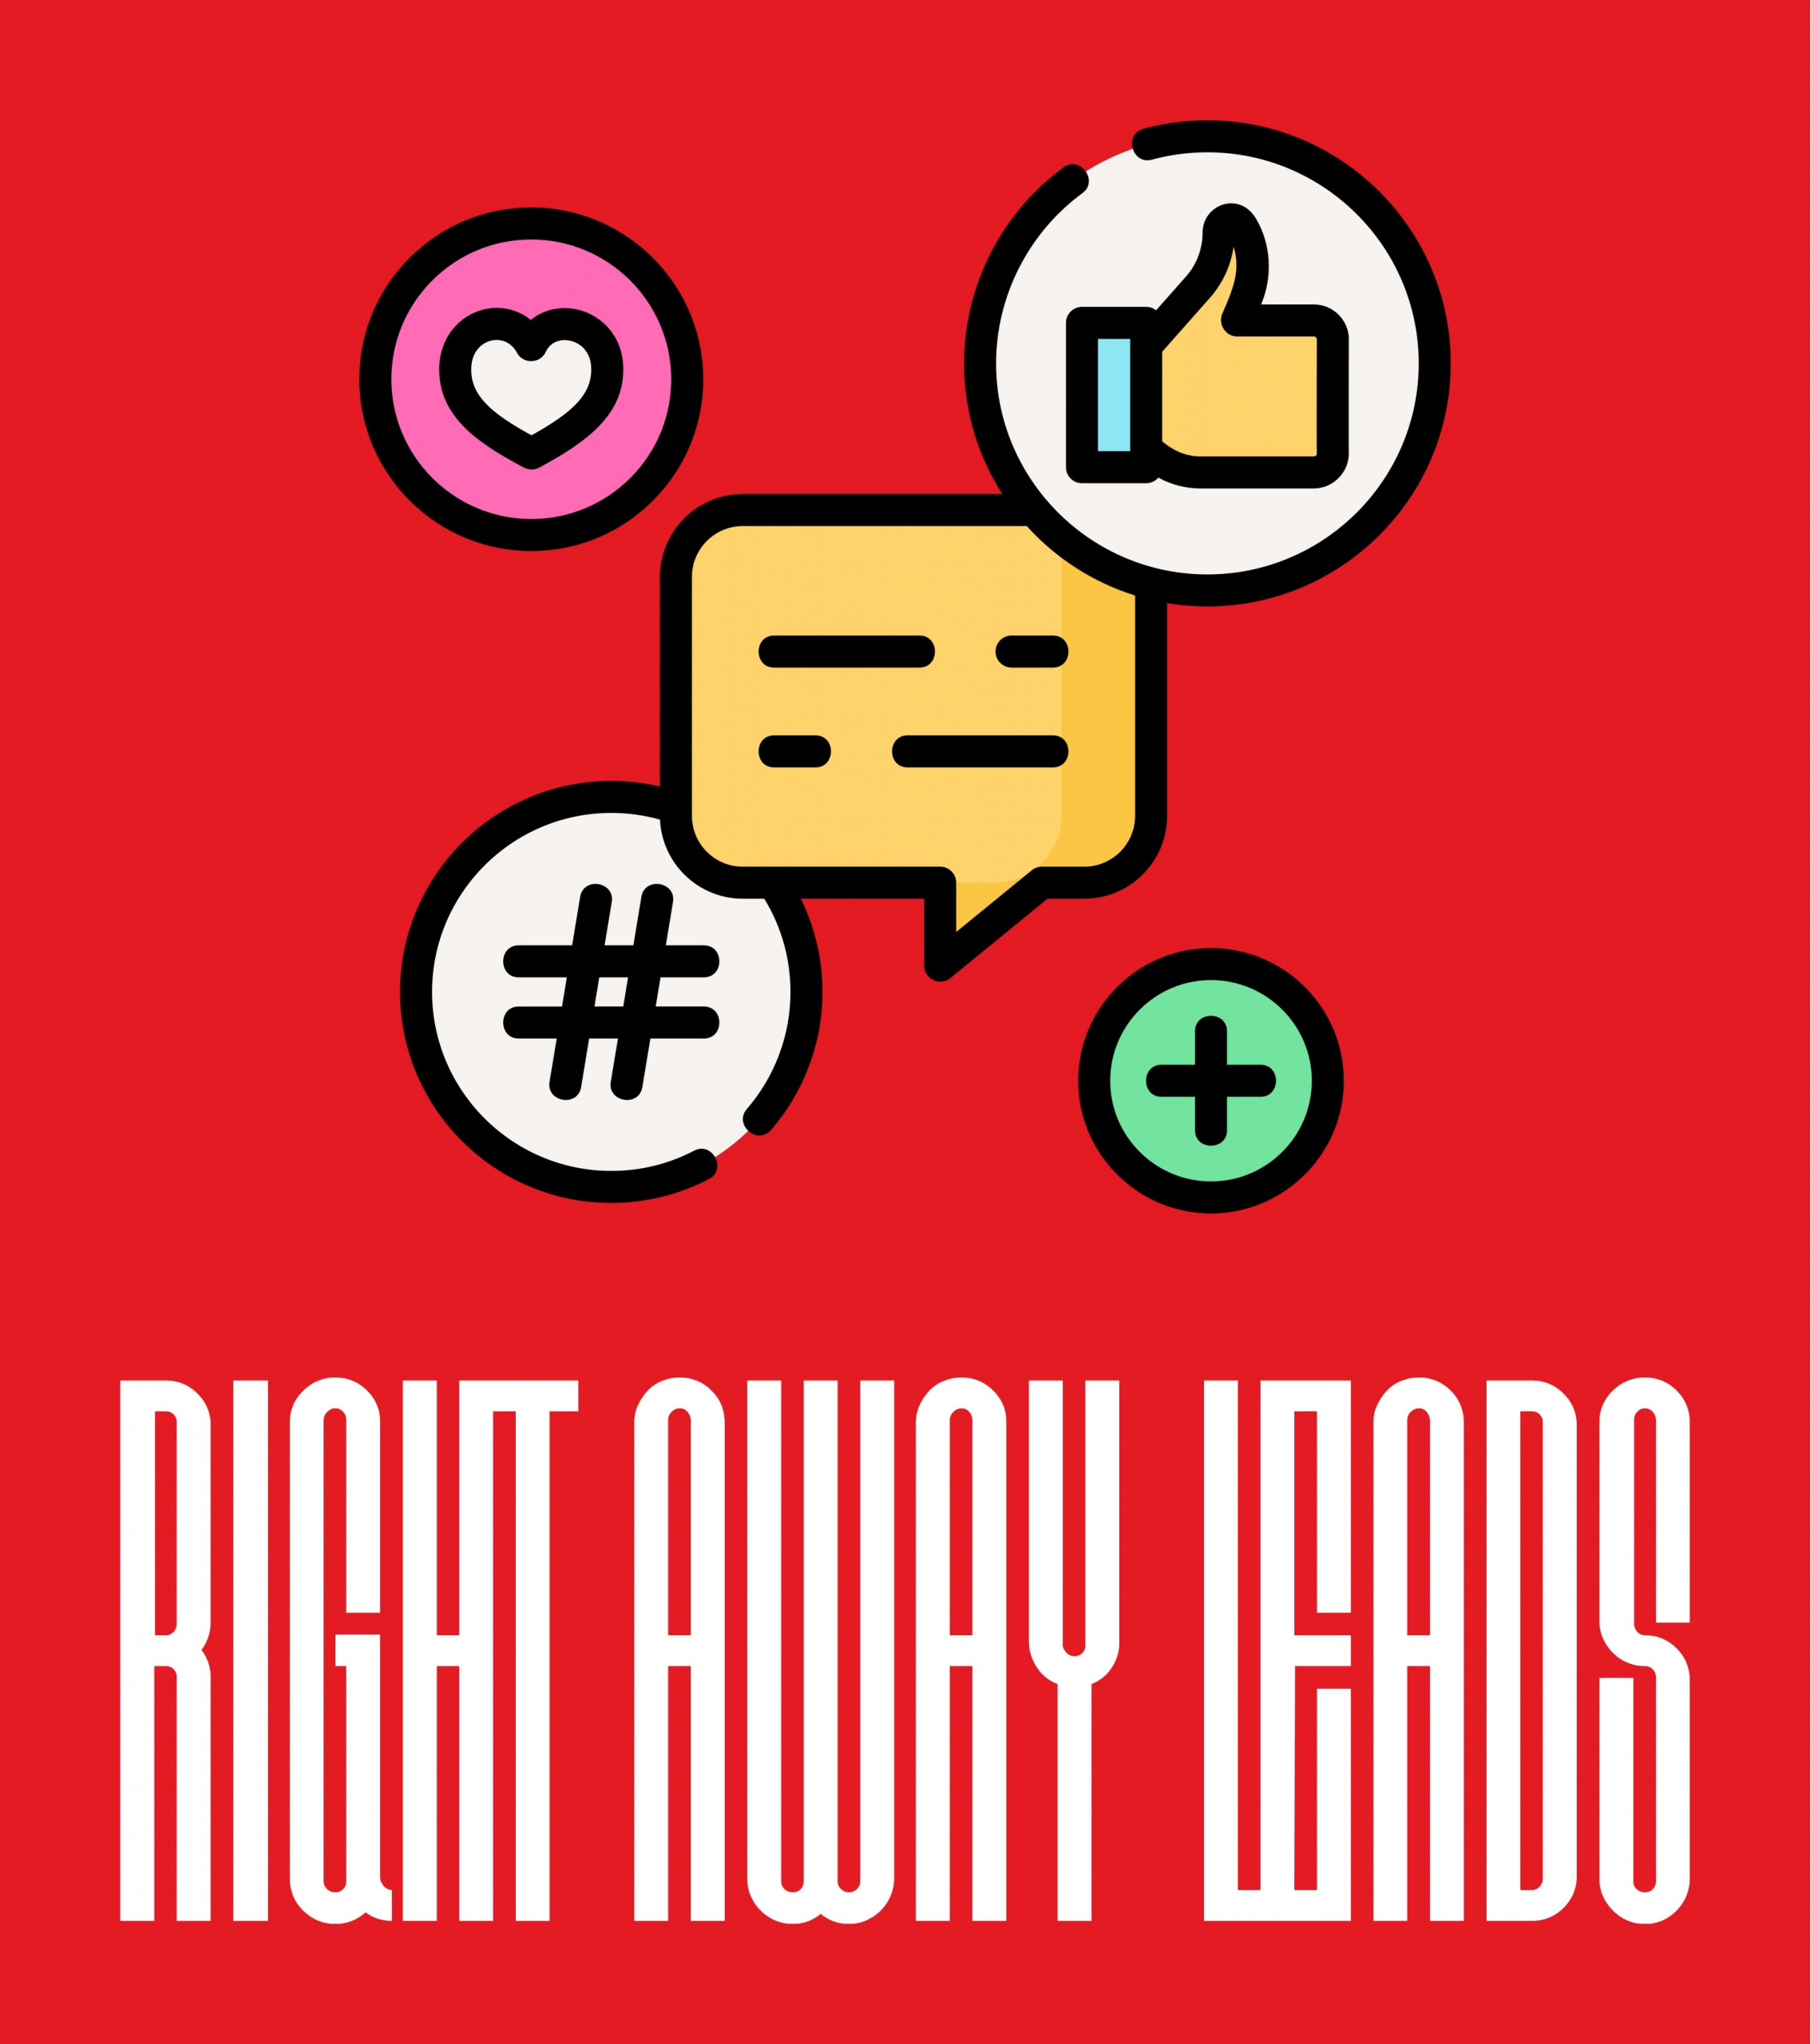 Right Away Leads